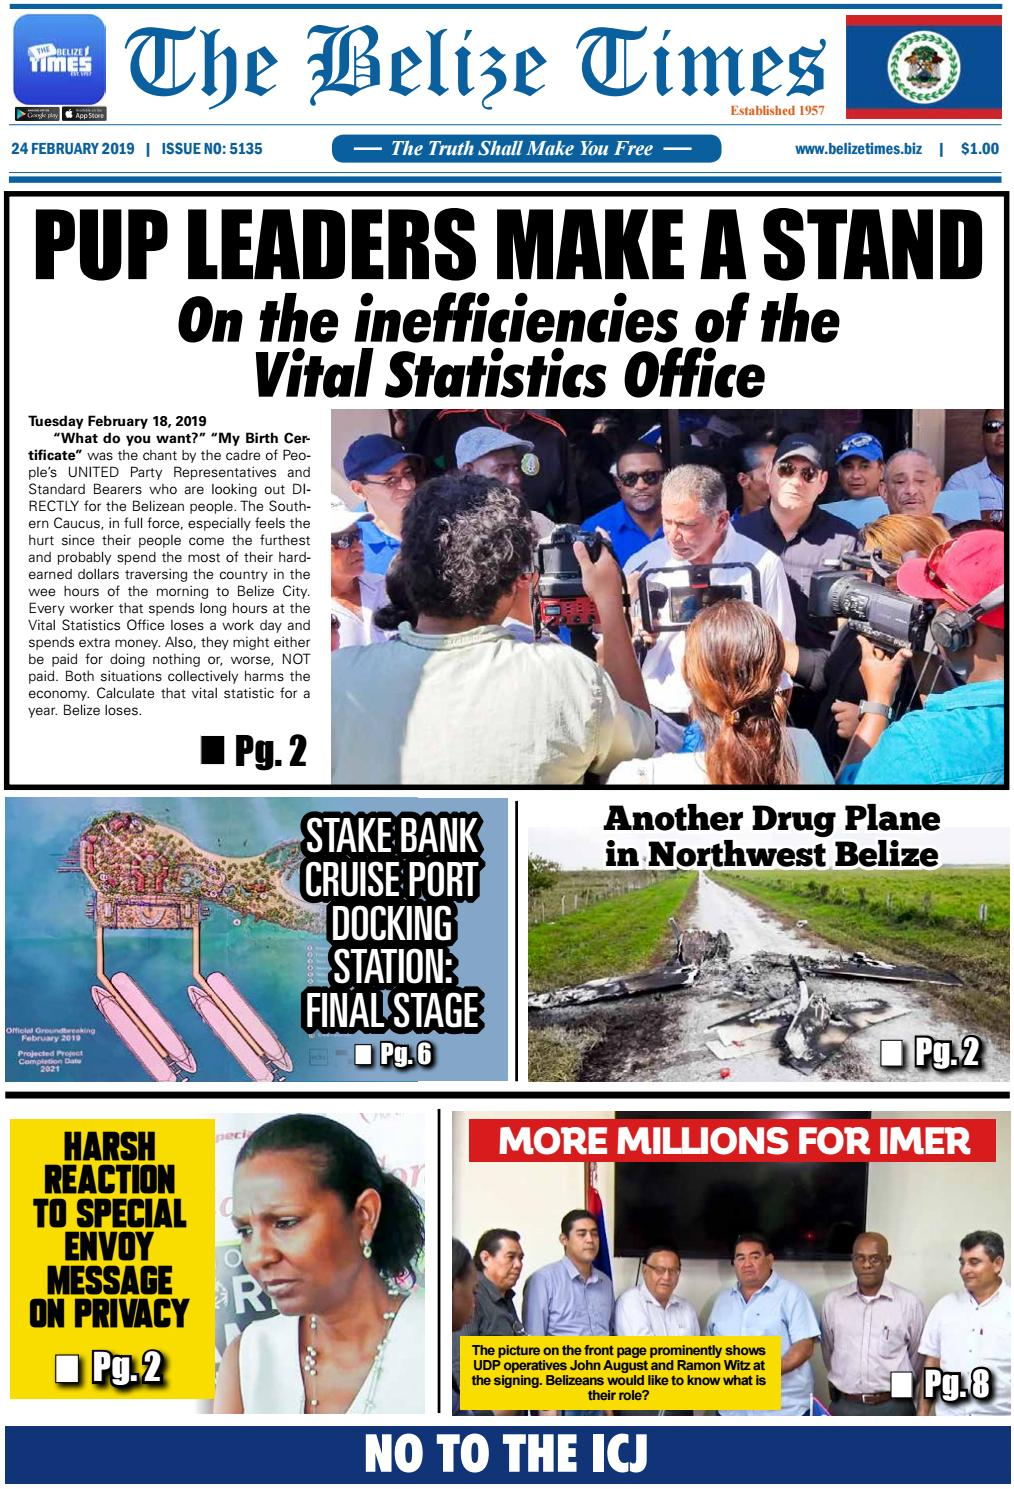 Belize Times February 24, 2019 by Belize Times Press - issuu